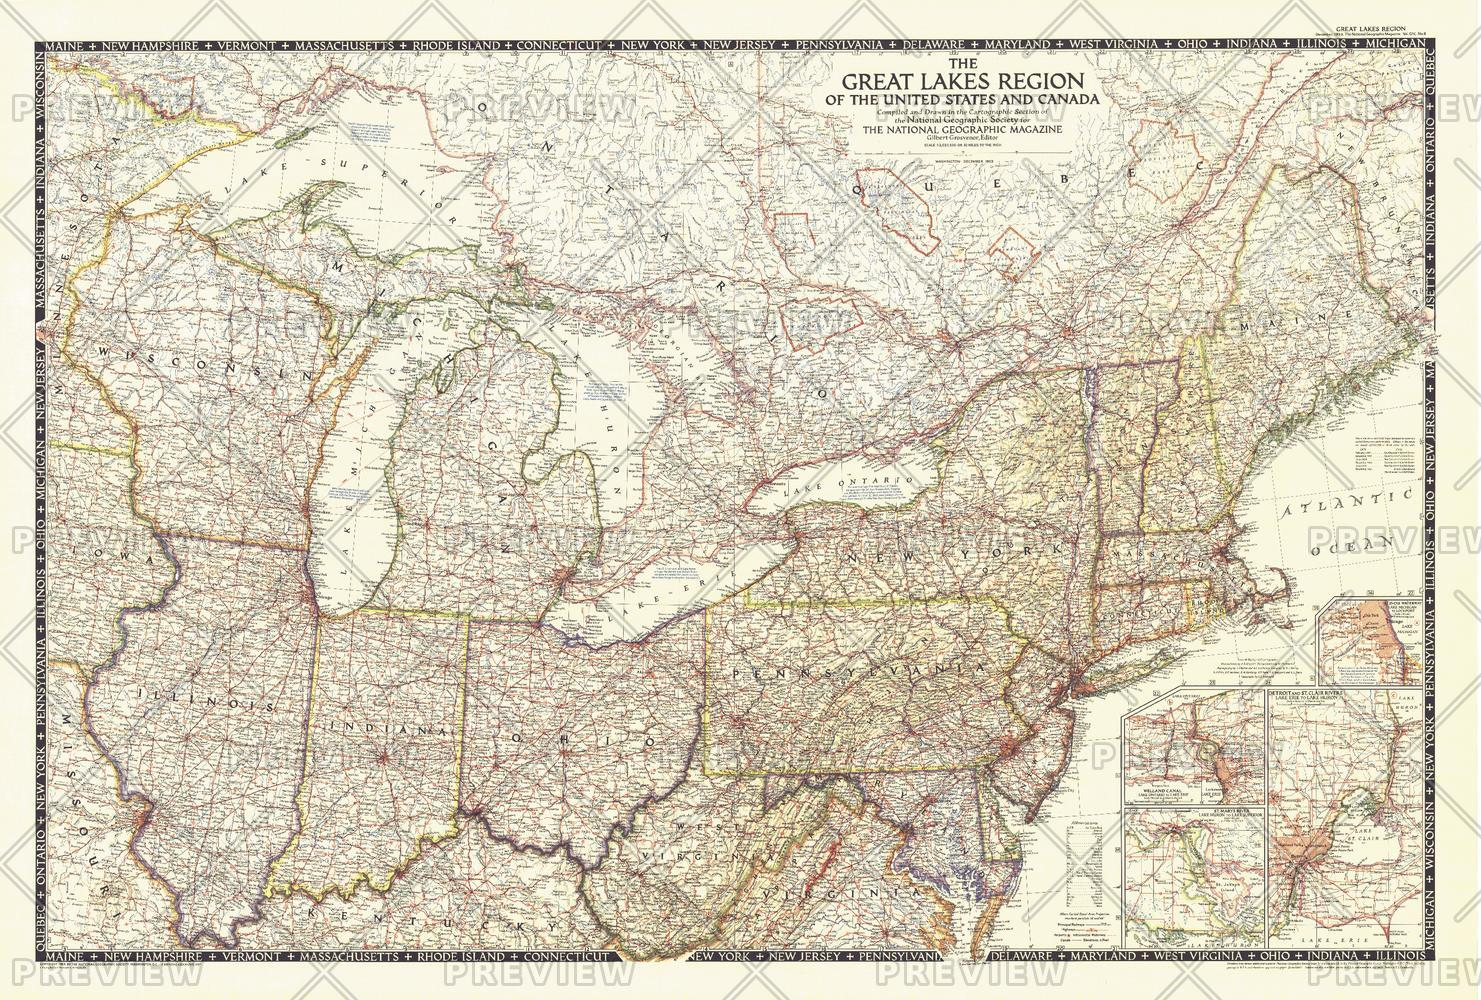 The Great Lakes Region of the United States and Canada - Published 1953